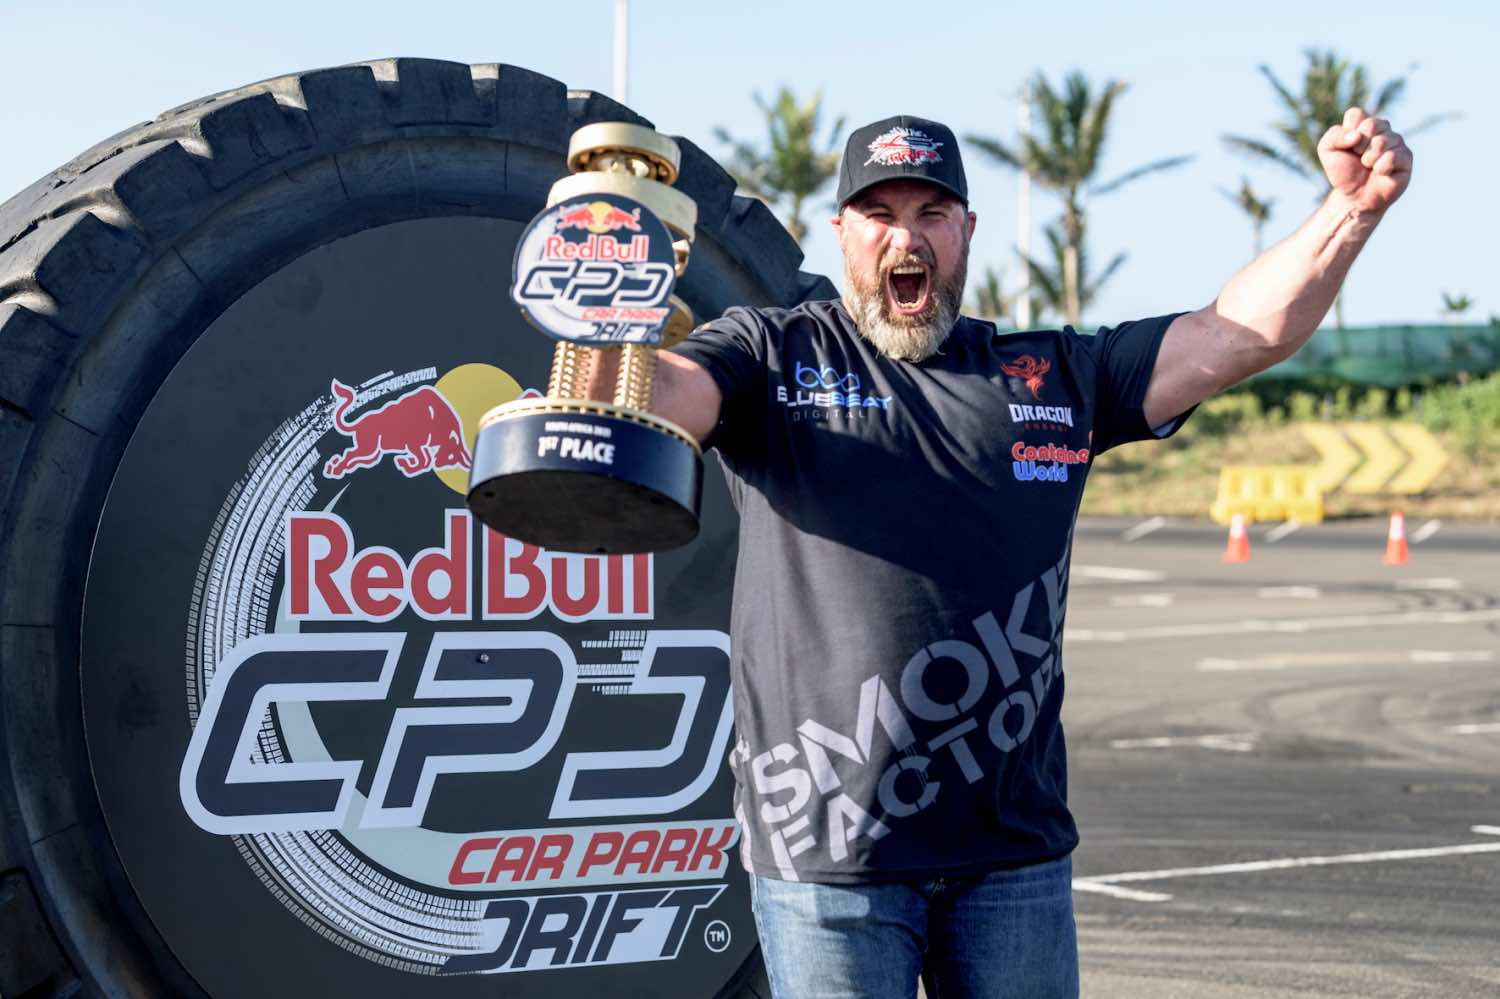 Jim Mc Farlane will now make his way to the Red Bull Car Park Drift World Final